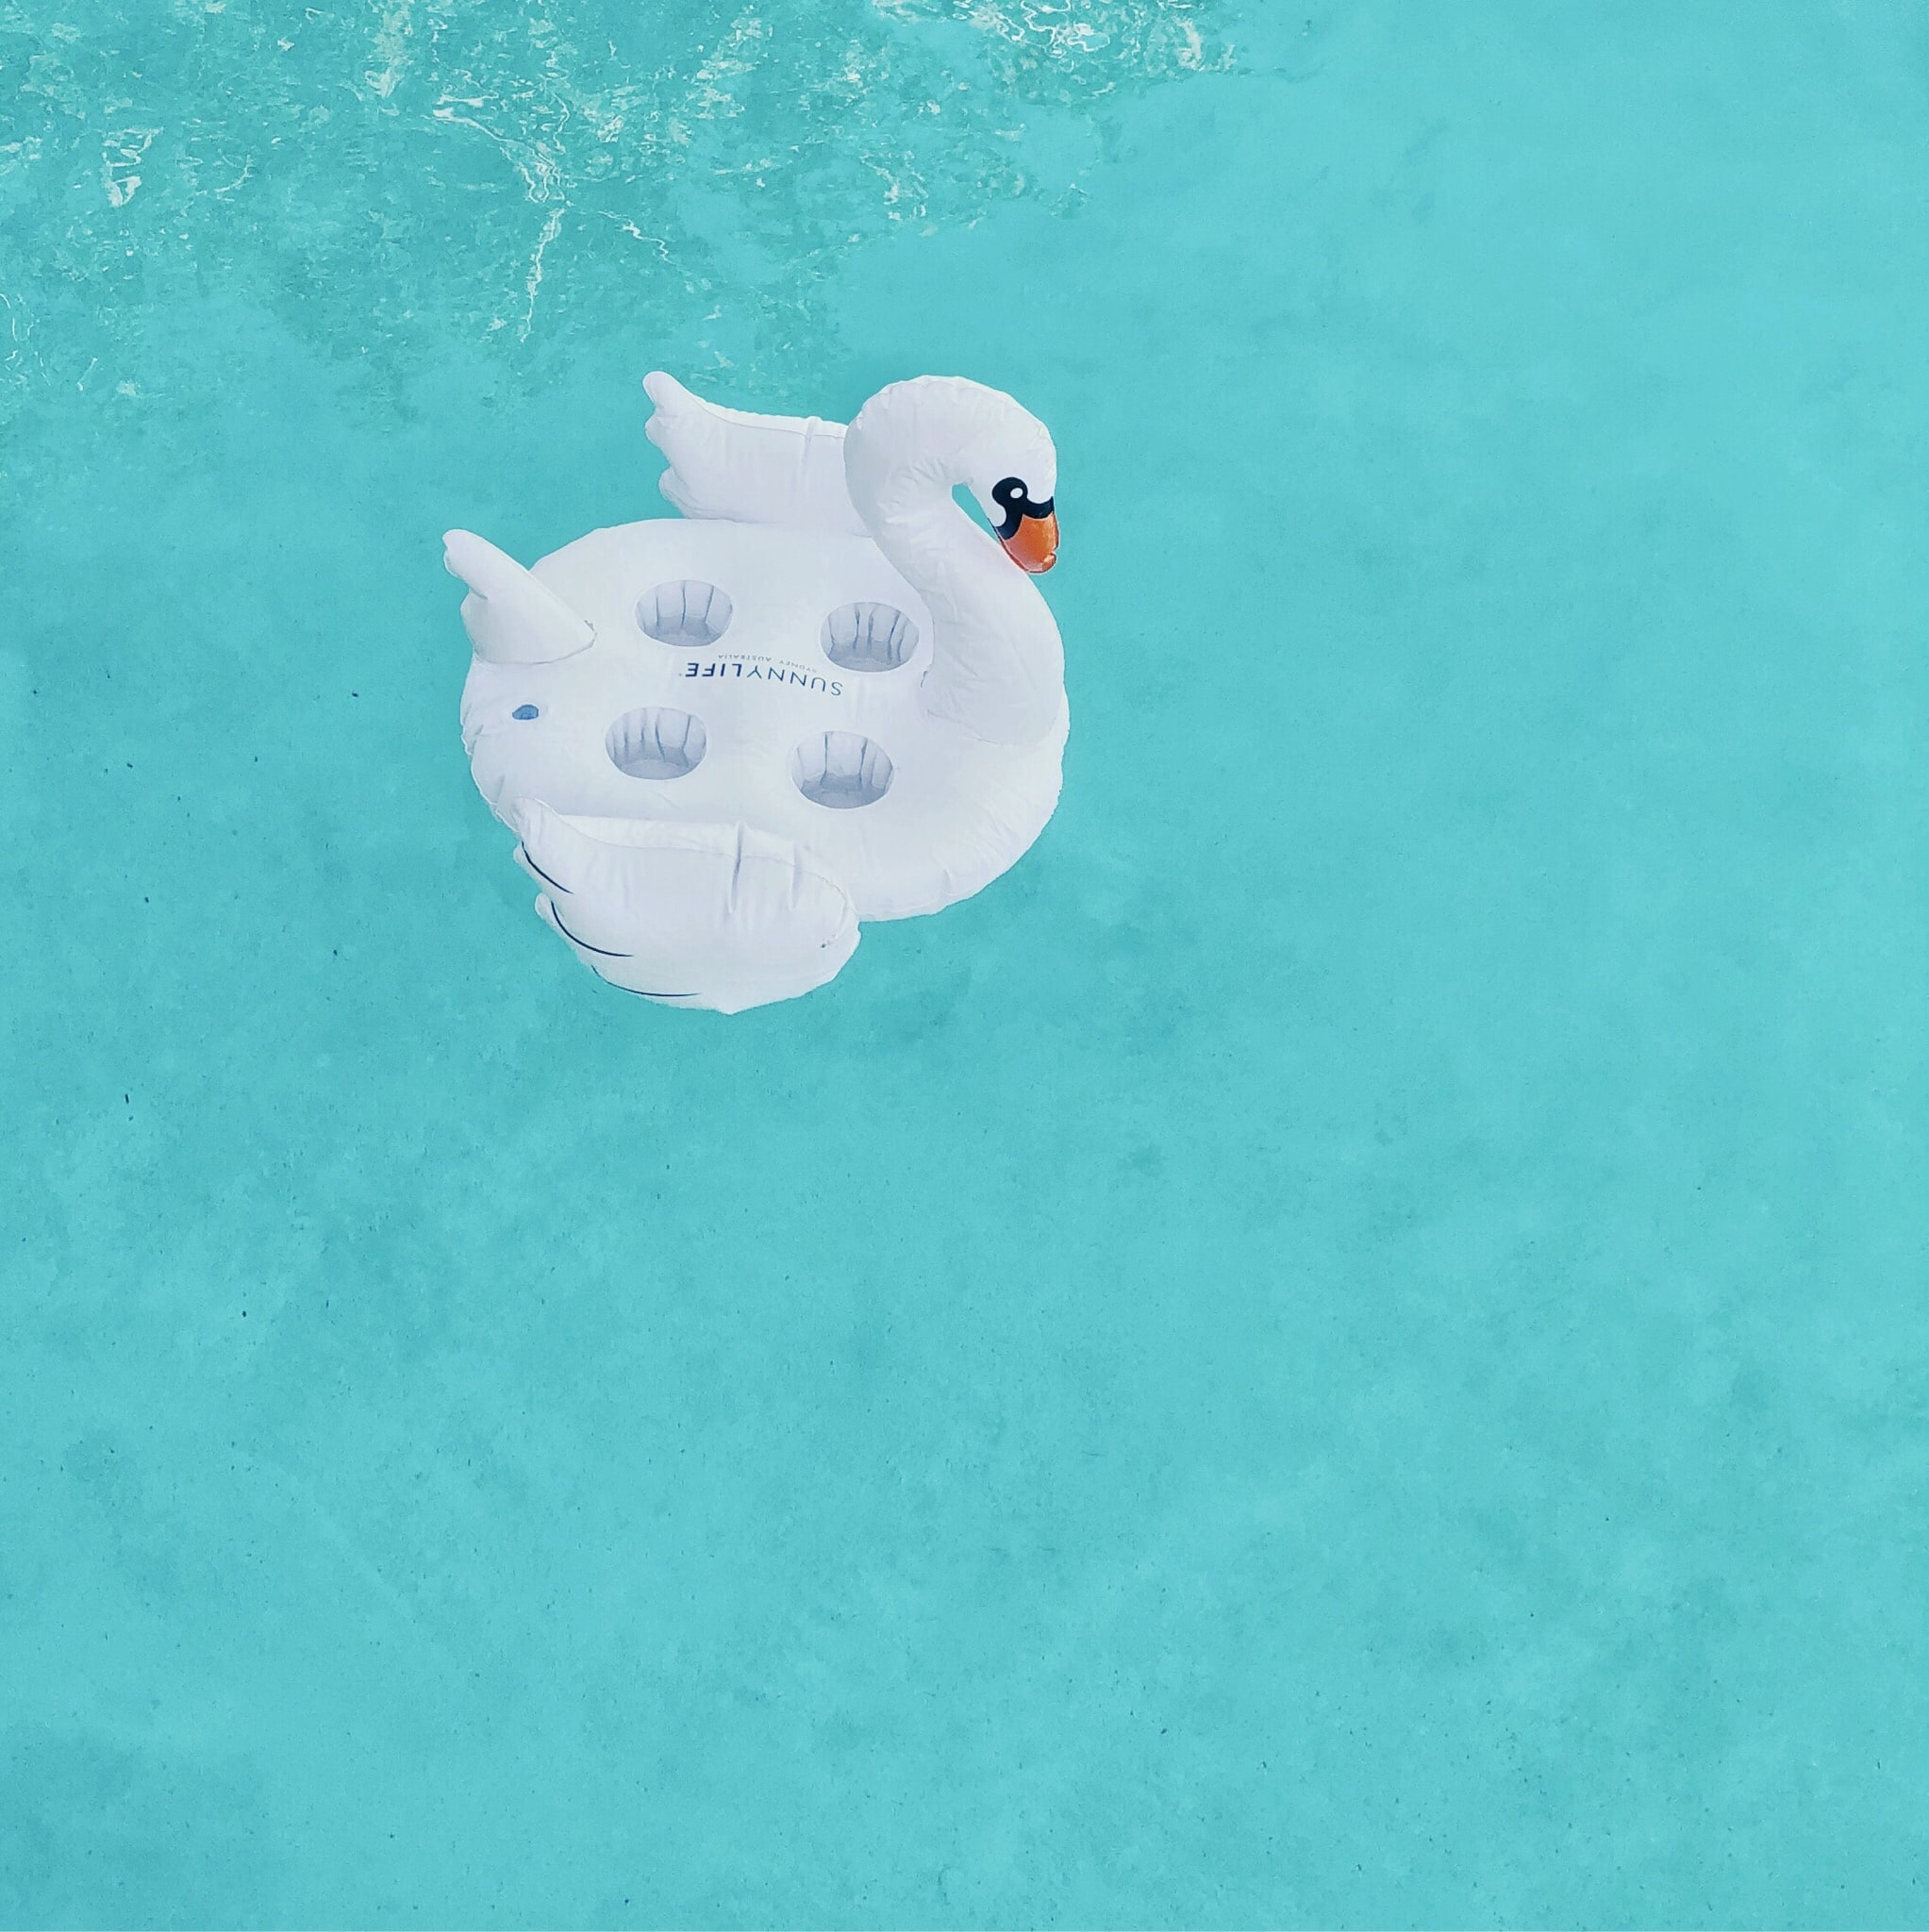 white swan inflatable on body of water